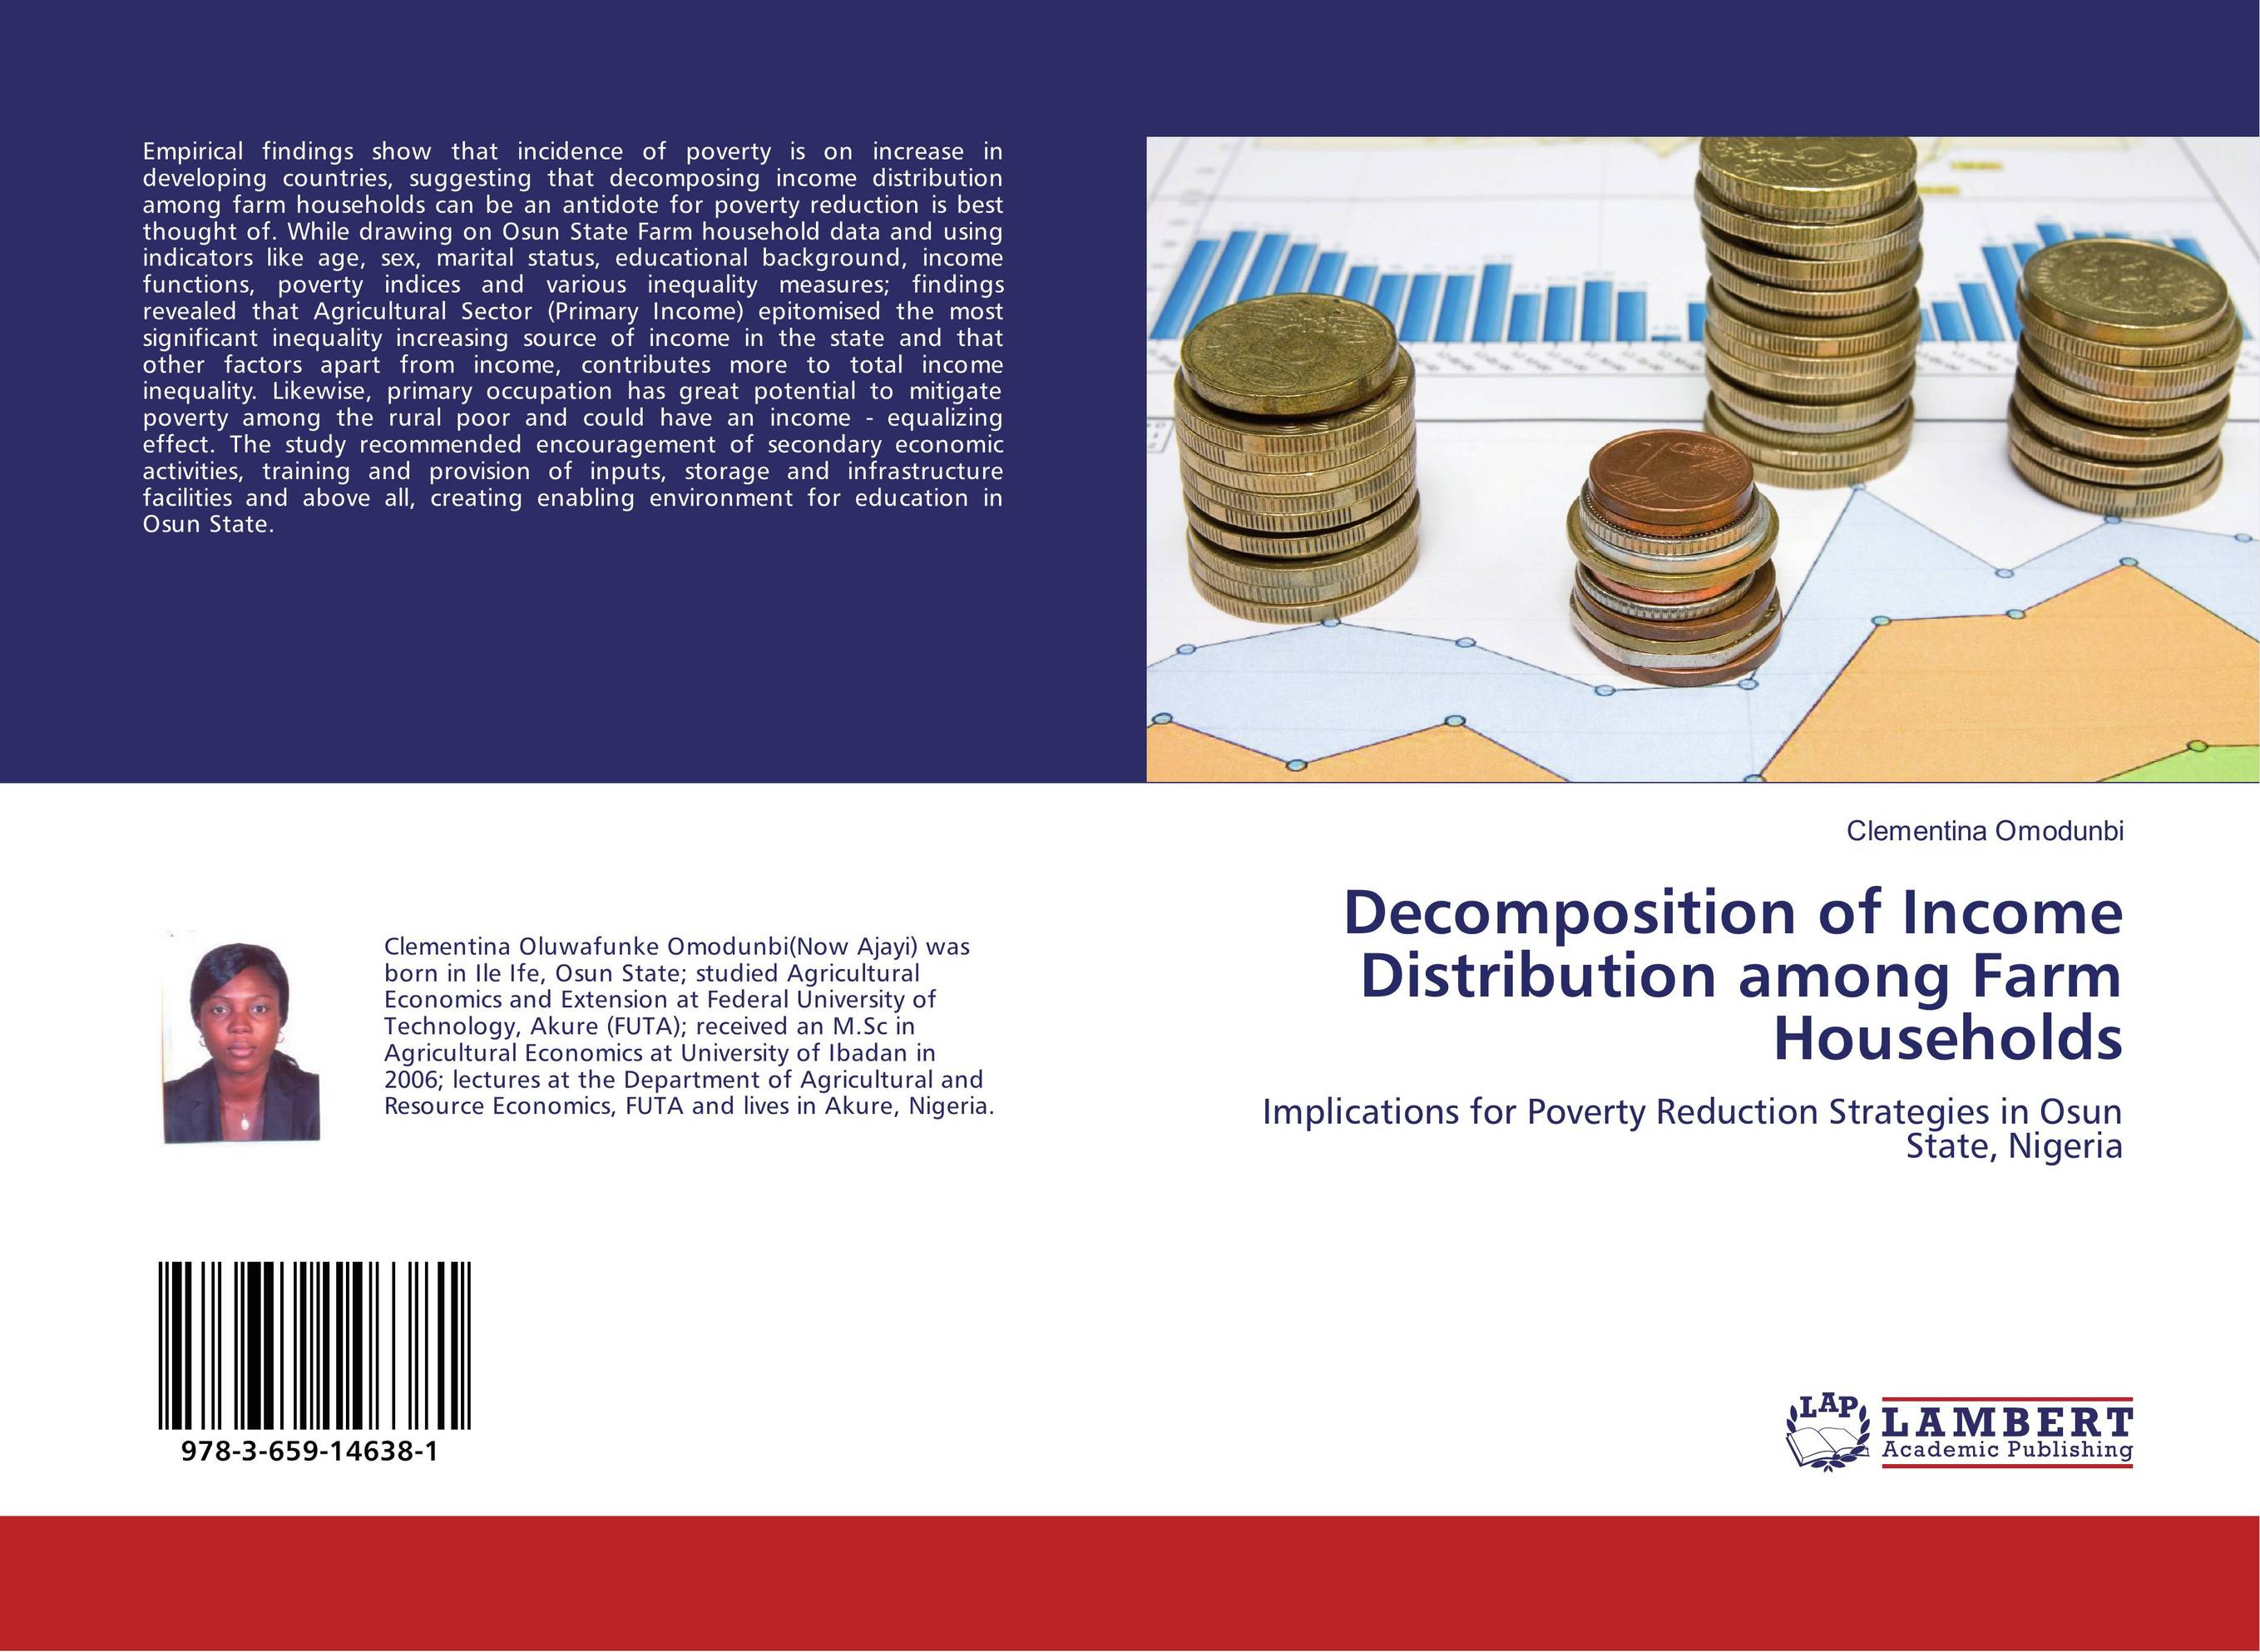 Decomposition of Income Distribution among Farm Households john m peckham iii a master guide to income property brokerage boost your income by selling commercial and income properties